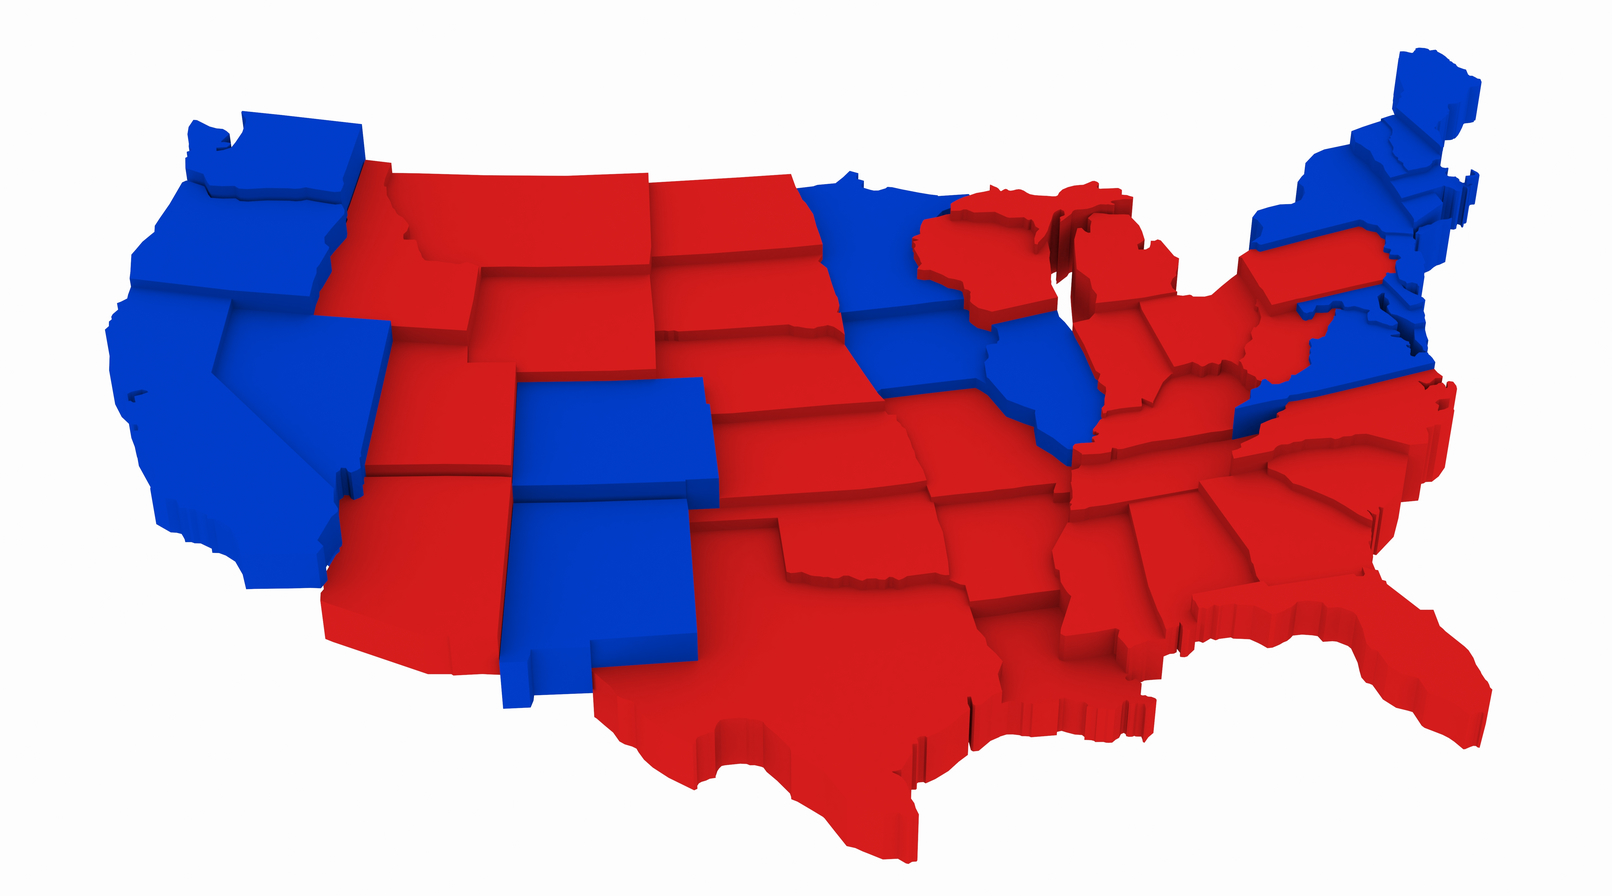 Coalition of Law Firms, Professors Files Several Lawsuits Alleging Electoral College Is Unconstitutional